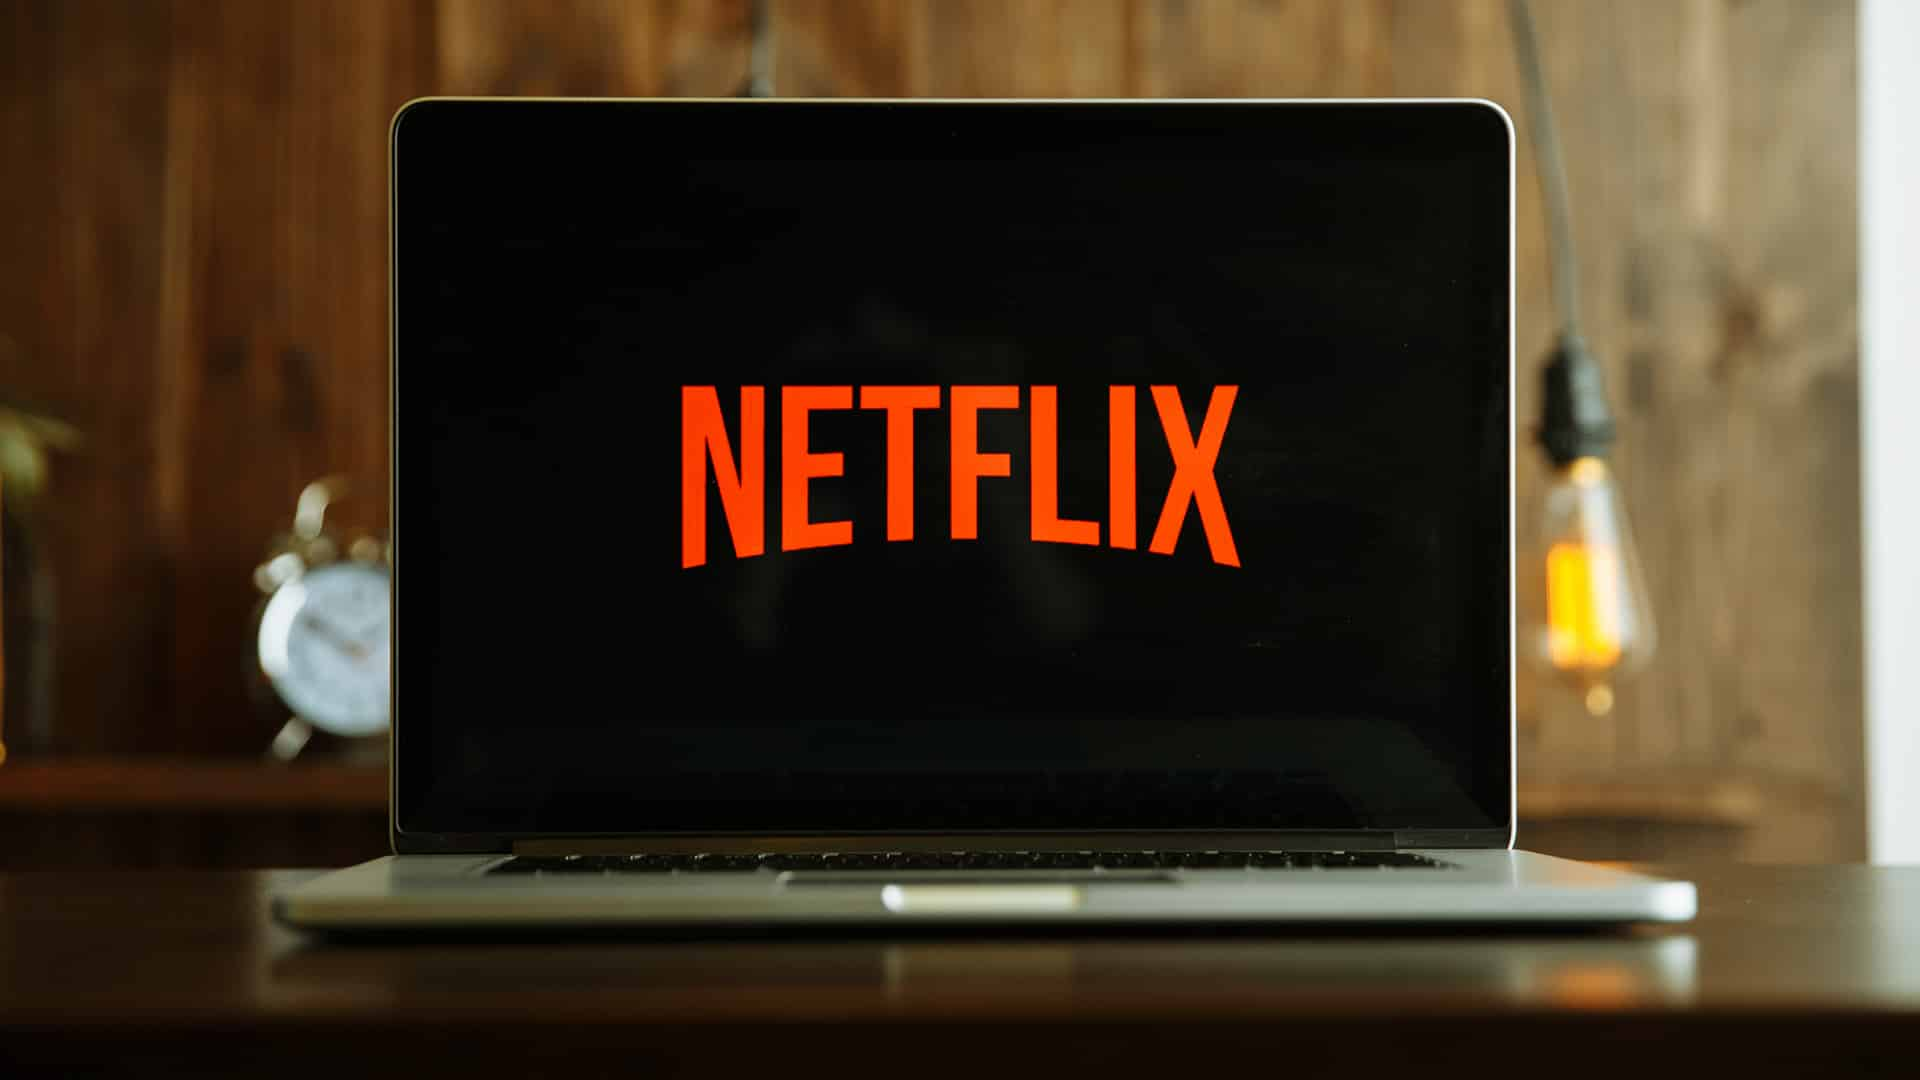 Netflix to soon offer video games on platform as its growth slows